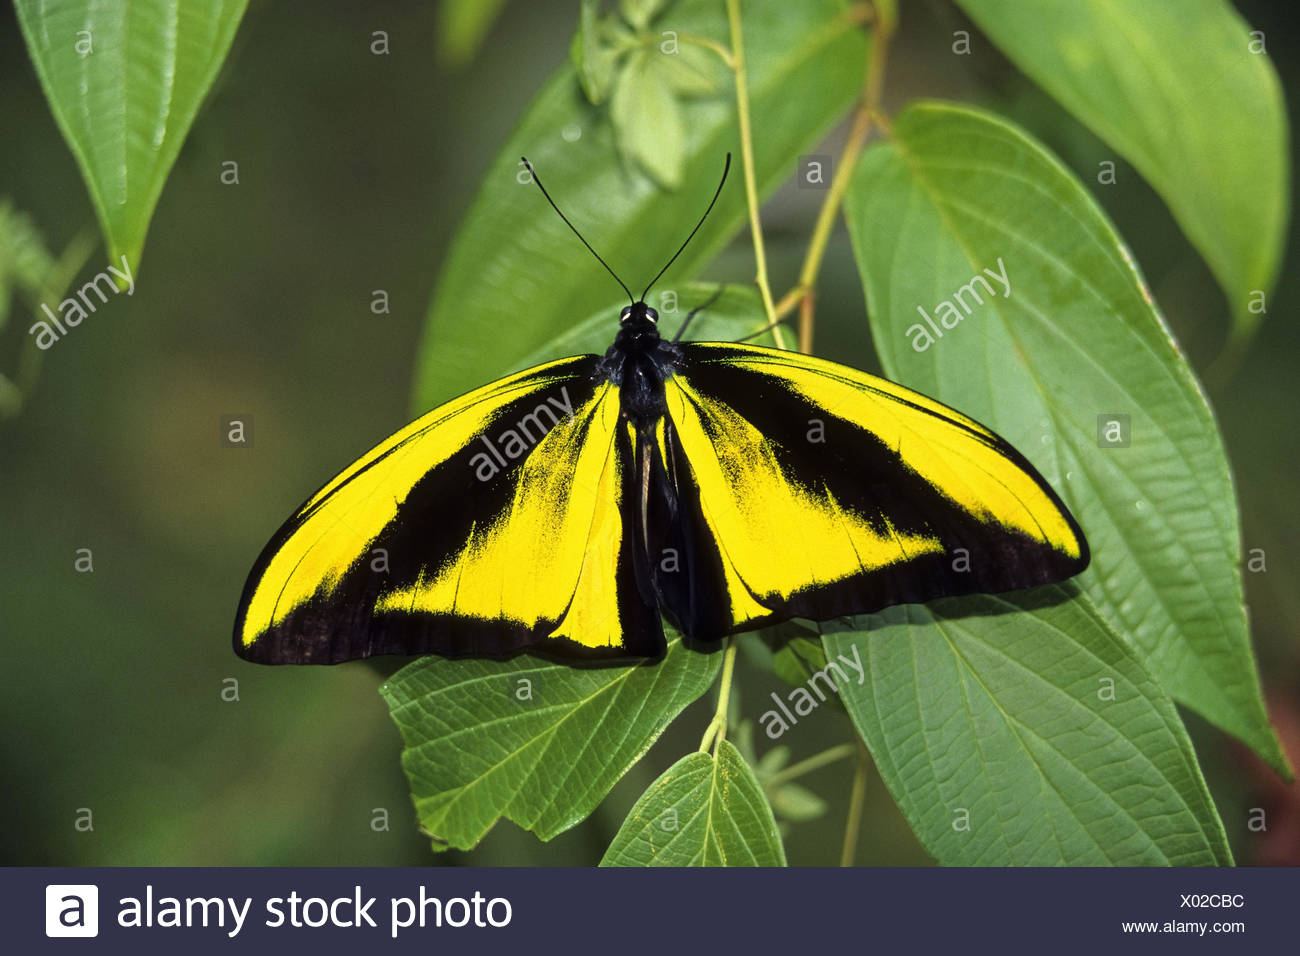 Goliath Birdwing Butterfly (Ornithoptera goliath samson), male sitting on a branch, Indonesia, Western New Guinea - Stock Image